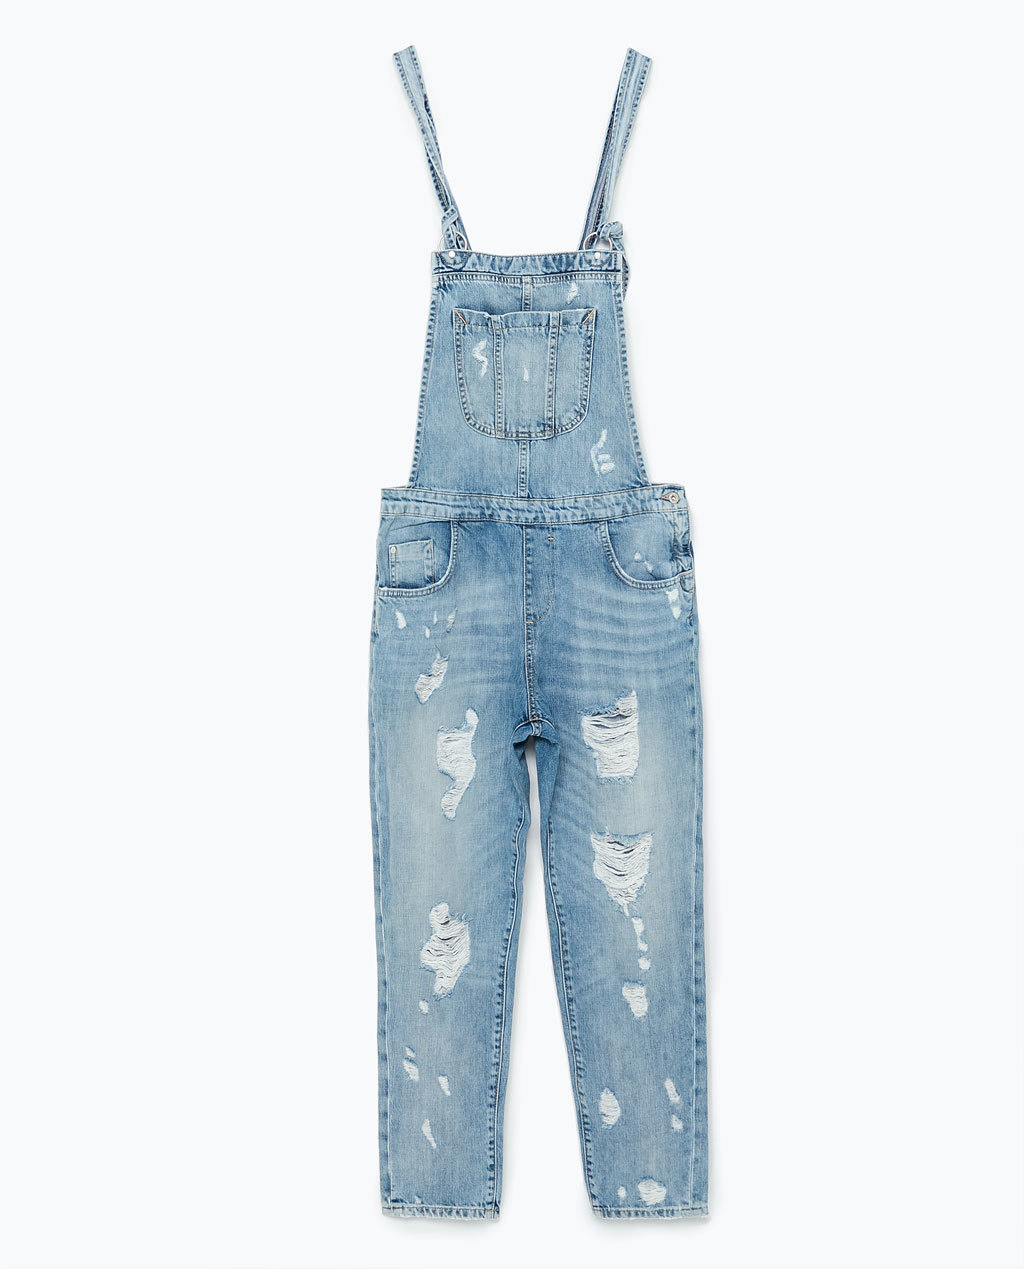 Ripped Denim Dungarees - pattern: plain; sleeve style: sleeveless; predominant colour: denim; occasions: casual, holiday; length: ankle length; fit: body skimming; fibres: cotton - 100%; sleeve length: sleeveless; texture group: denim; style: dungarees; neckline: low square neck; pattern type: fabric; season: s/s 2015; wardrobe: holiday